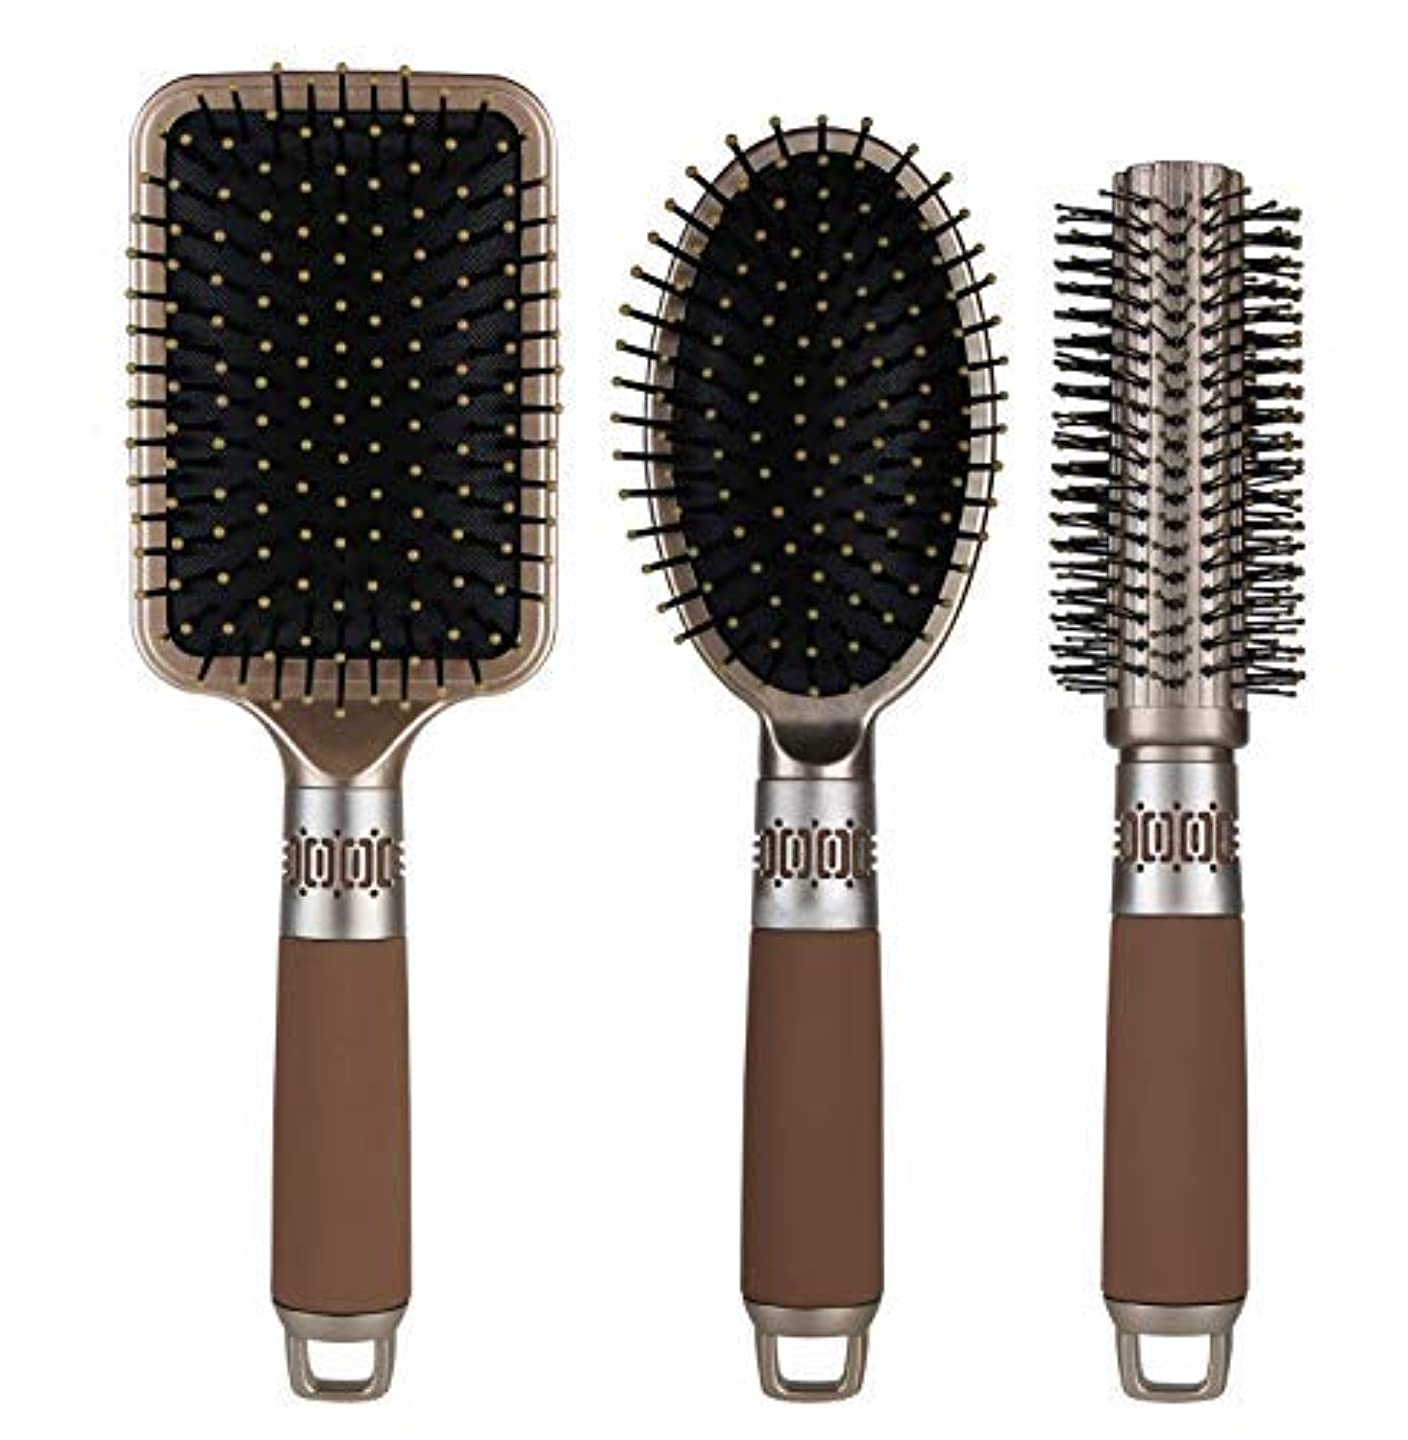 左荒野くしゃくしゃNVTED 3PCS Hair Combs, Massage Paddle Round Brush Hair Brushes Set Anti Static Detangling Air Cushion Bristle...